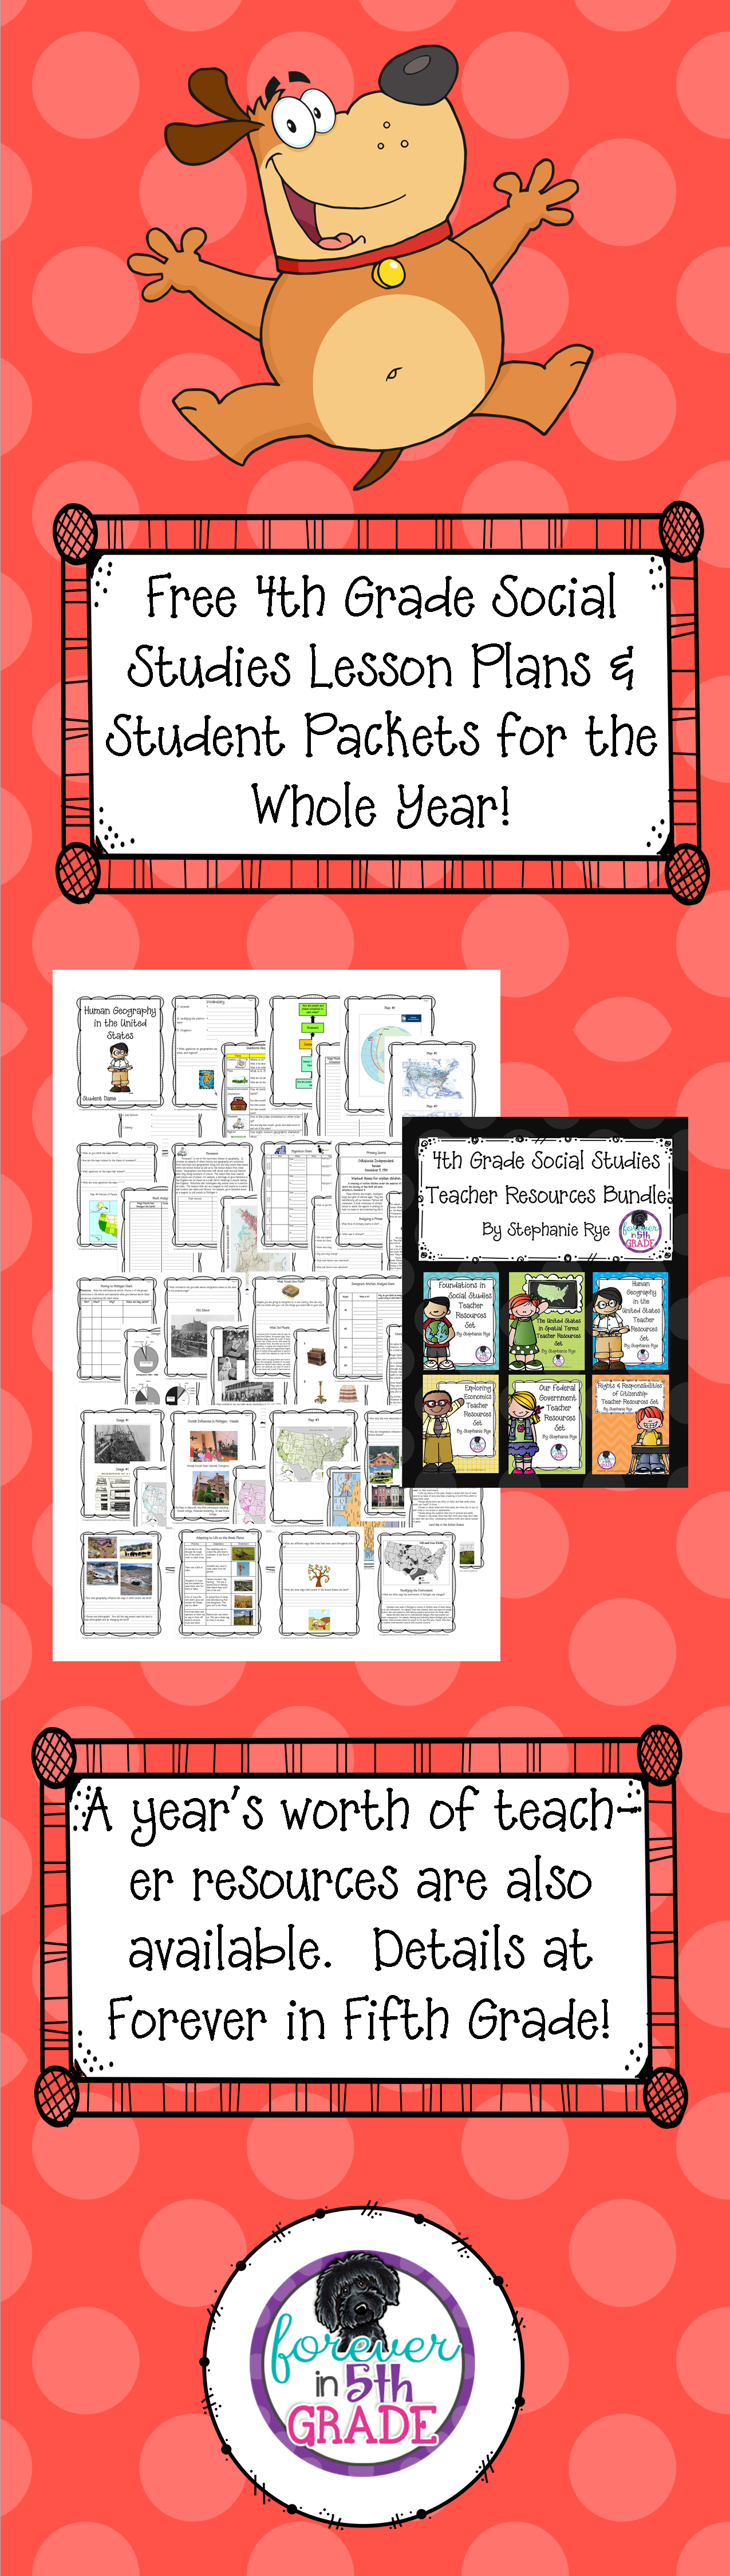 Monday Made ItIts Done Pinterest – Social Studies Lesson Plans For Elementary Students